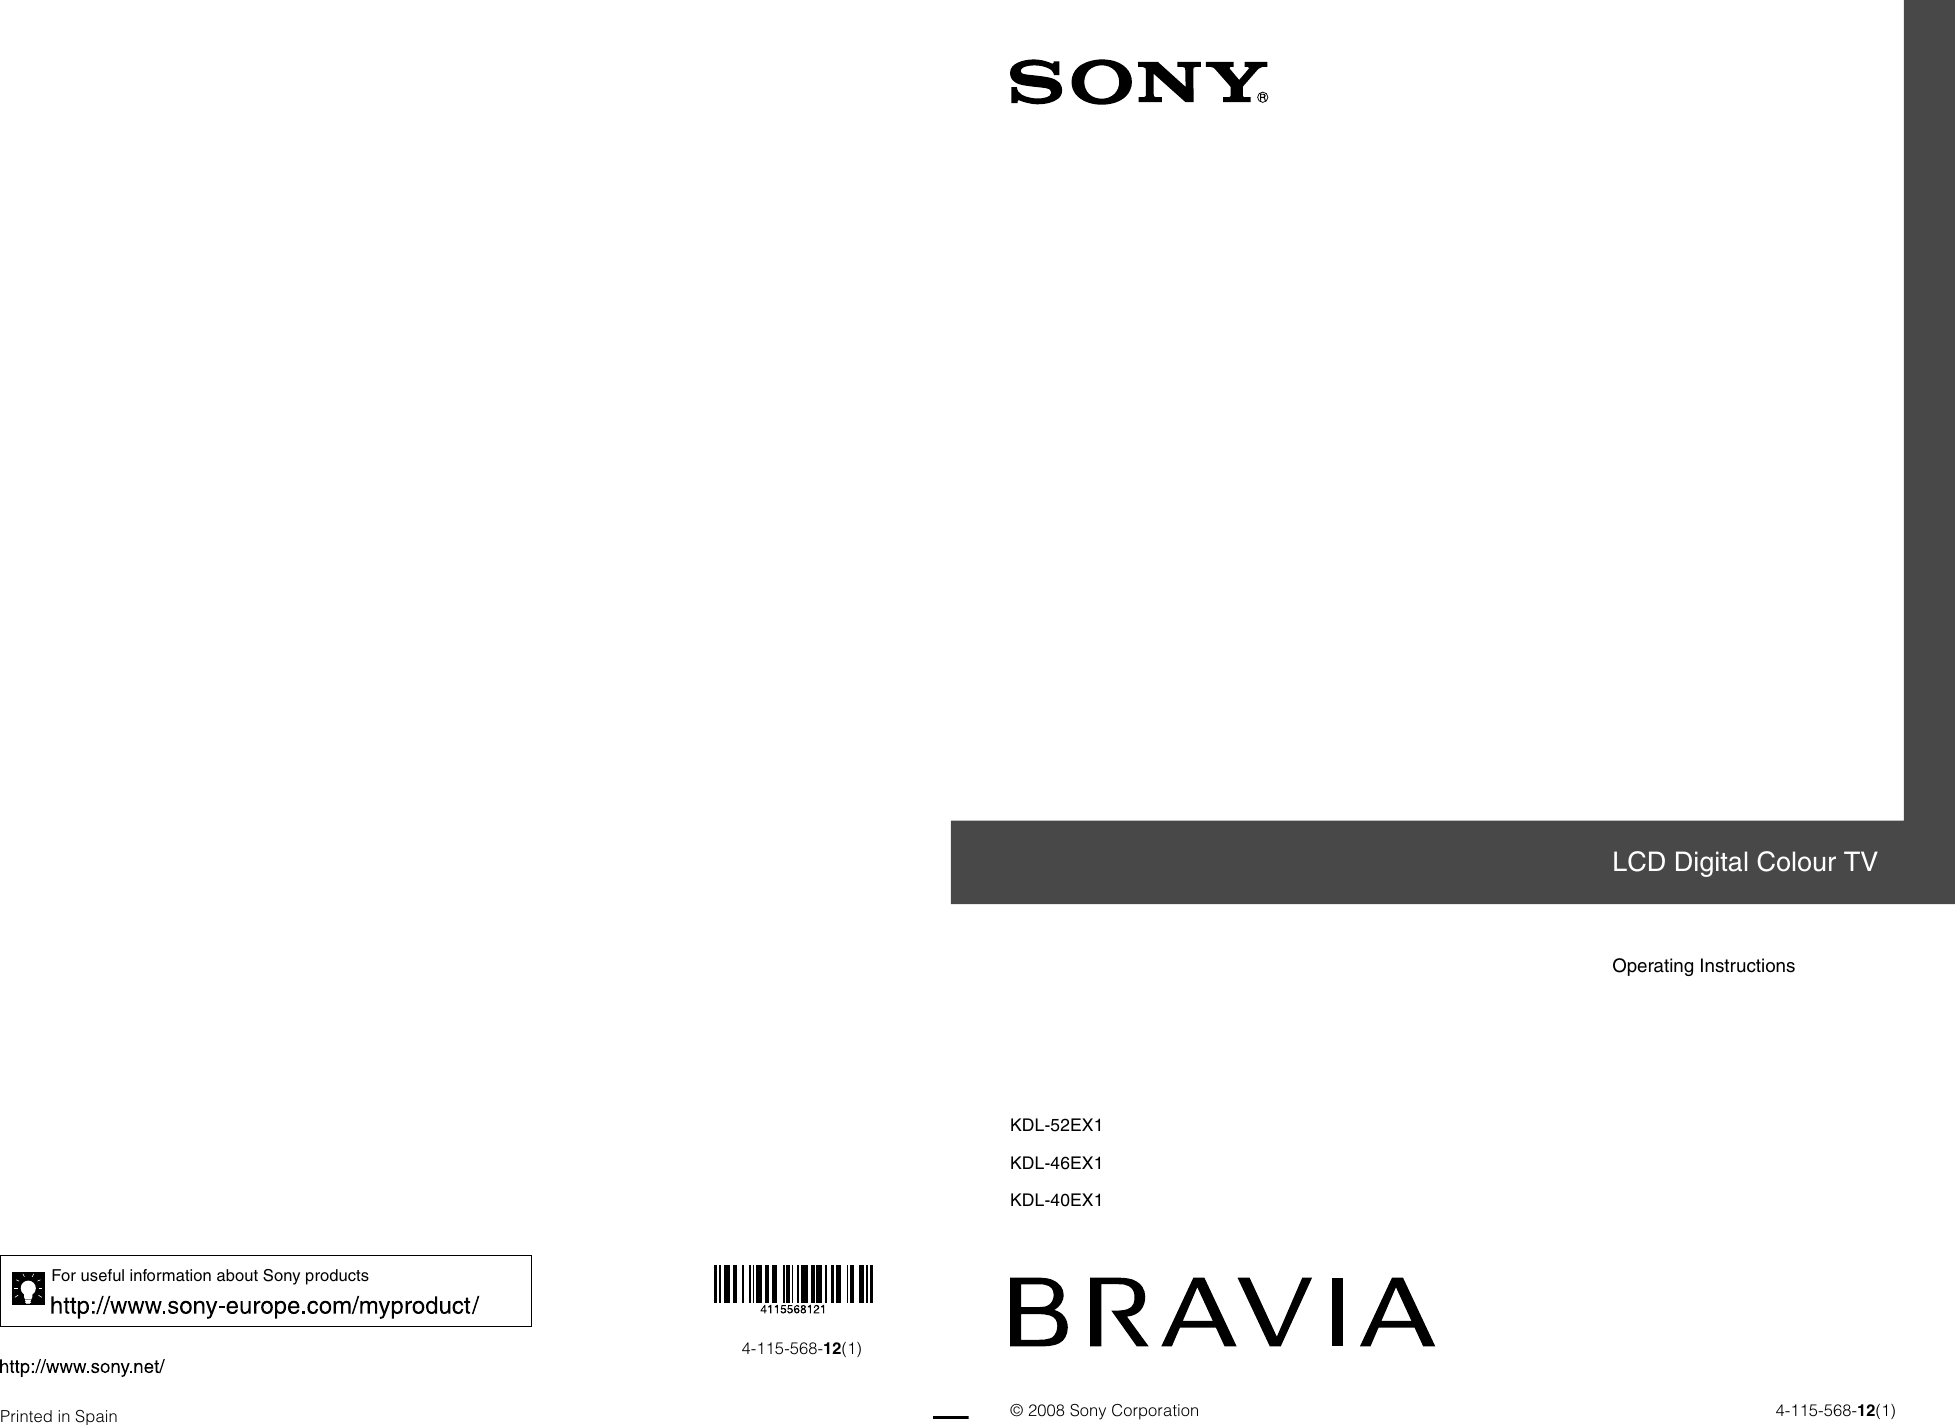 Sony Bravia 4 115 568 121 Users Manual KDL 40EX1/KDL 46EX1